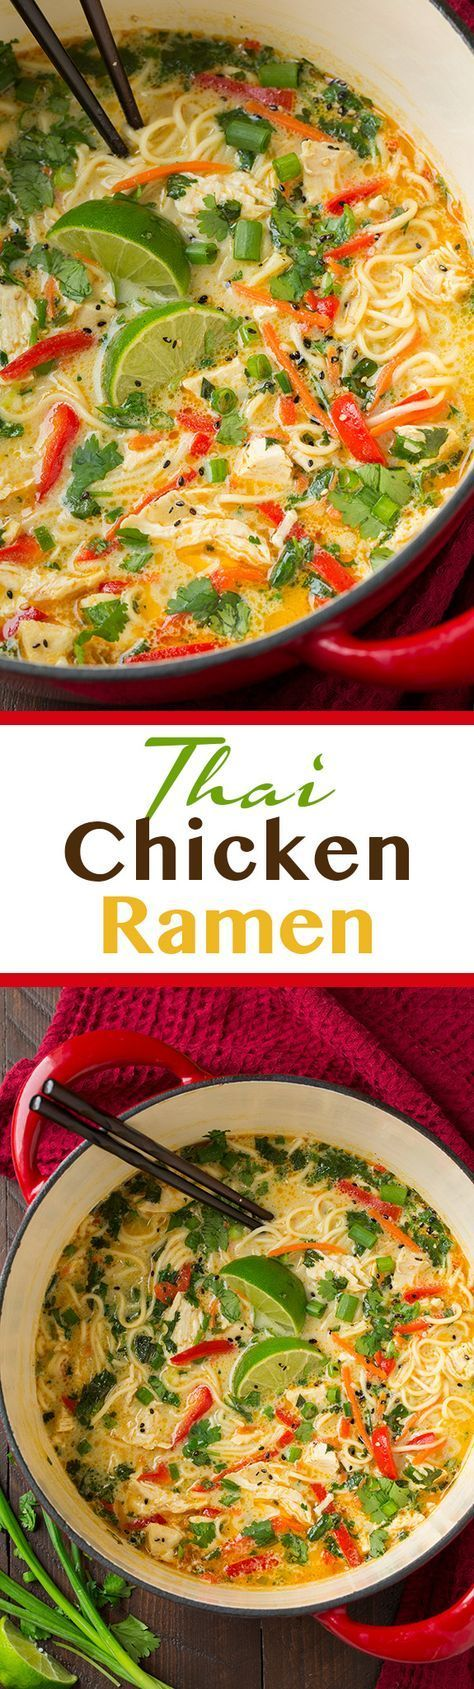 Thai Chicken Ramen - this soup features many layers of flavors, including onion, garlic and ginger making it rich and robust. Easy to make and seriously so good! Definitely add the peanuts.